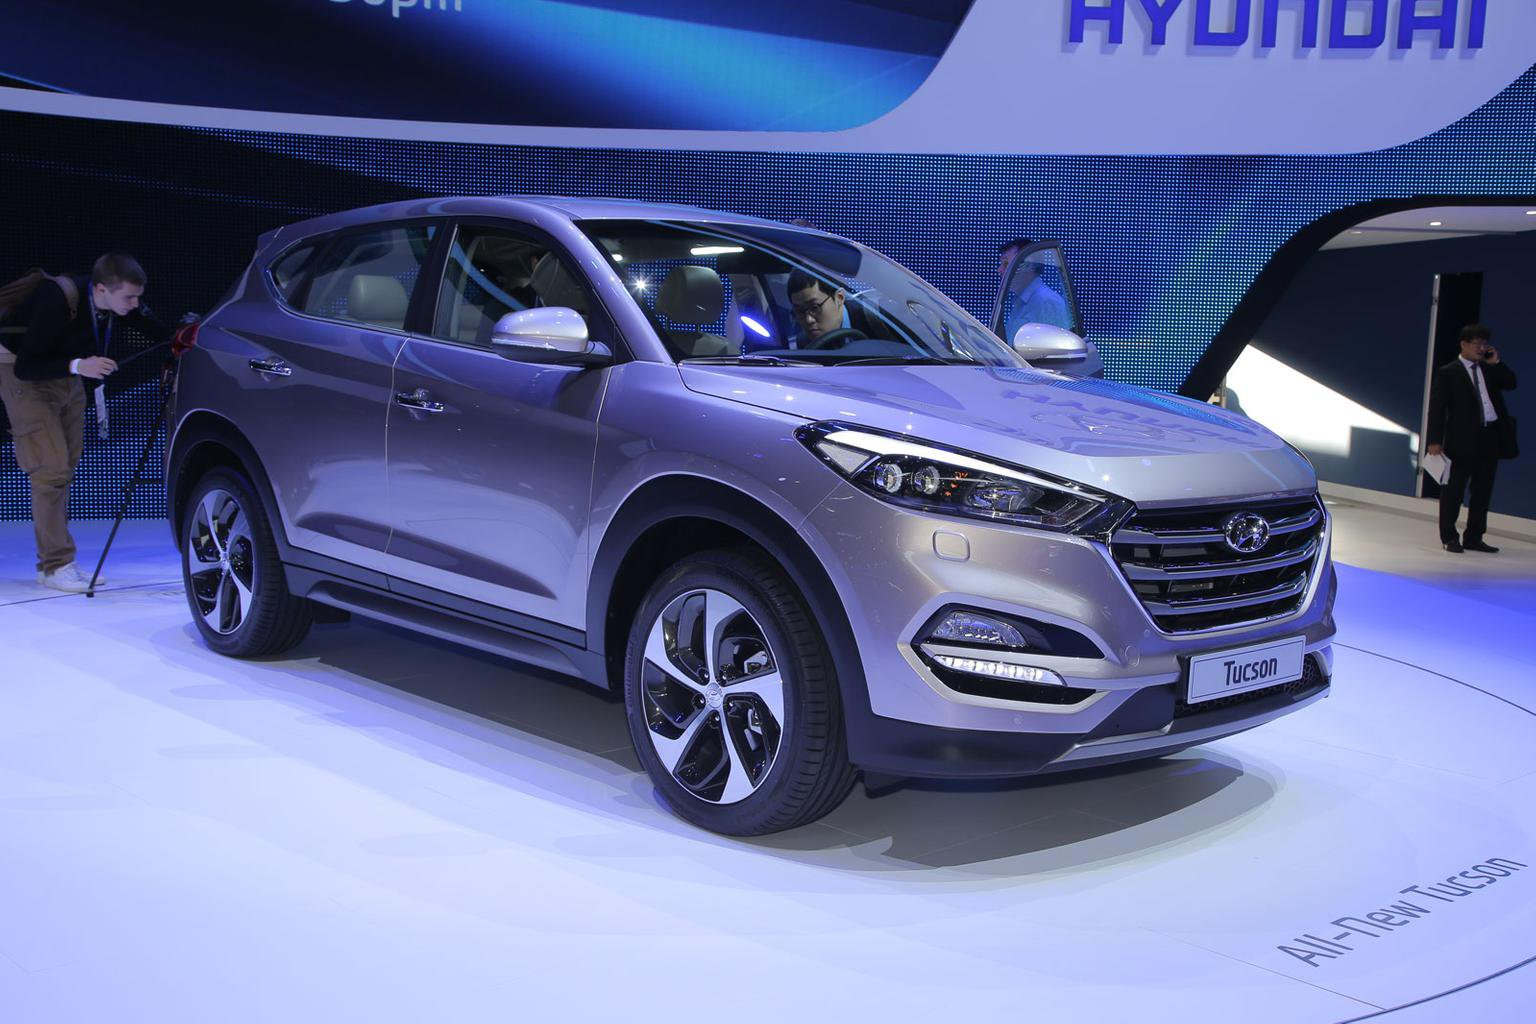 New Hyundai Tucson - prices, engines and on-sale date